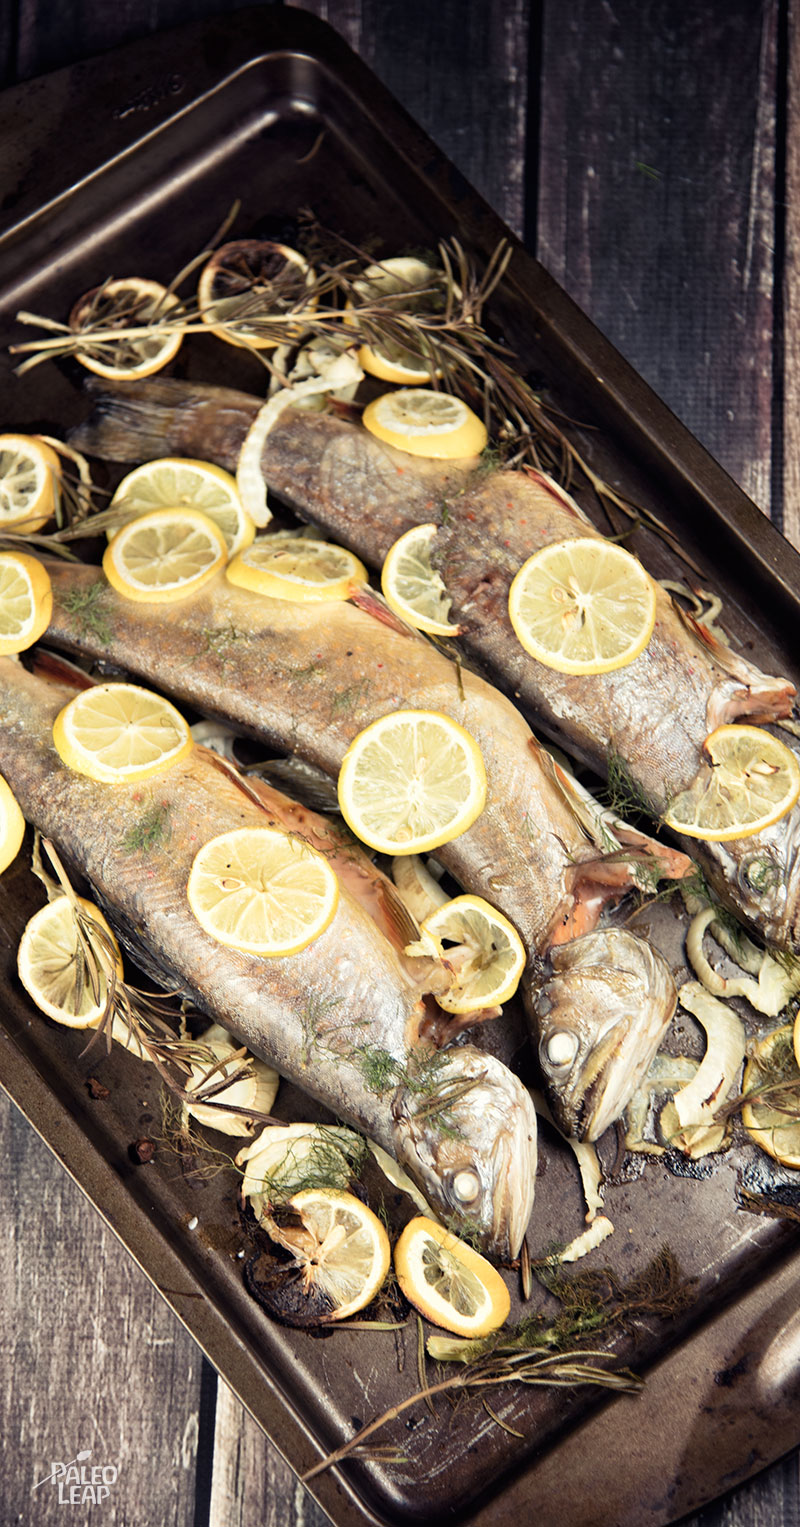 ... grilled whole trout stuffed roasted trout preparation roast ocean